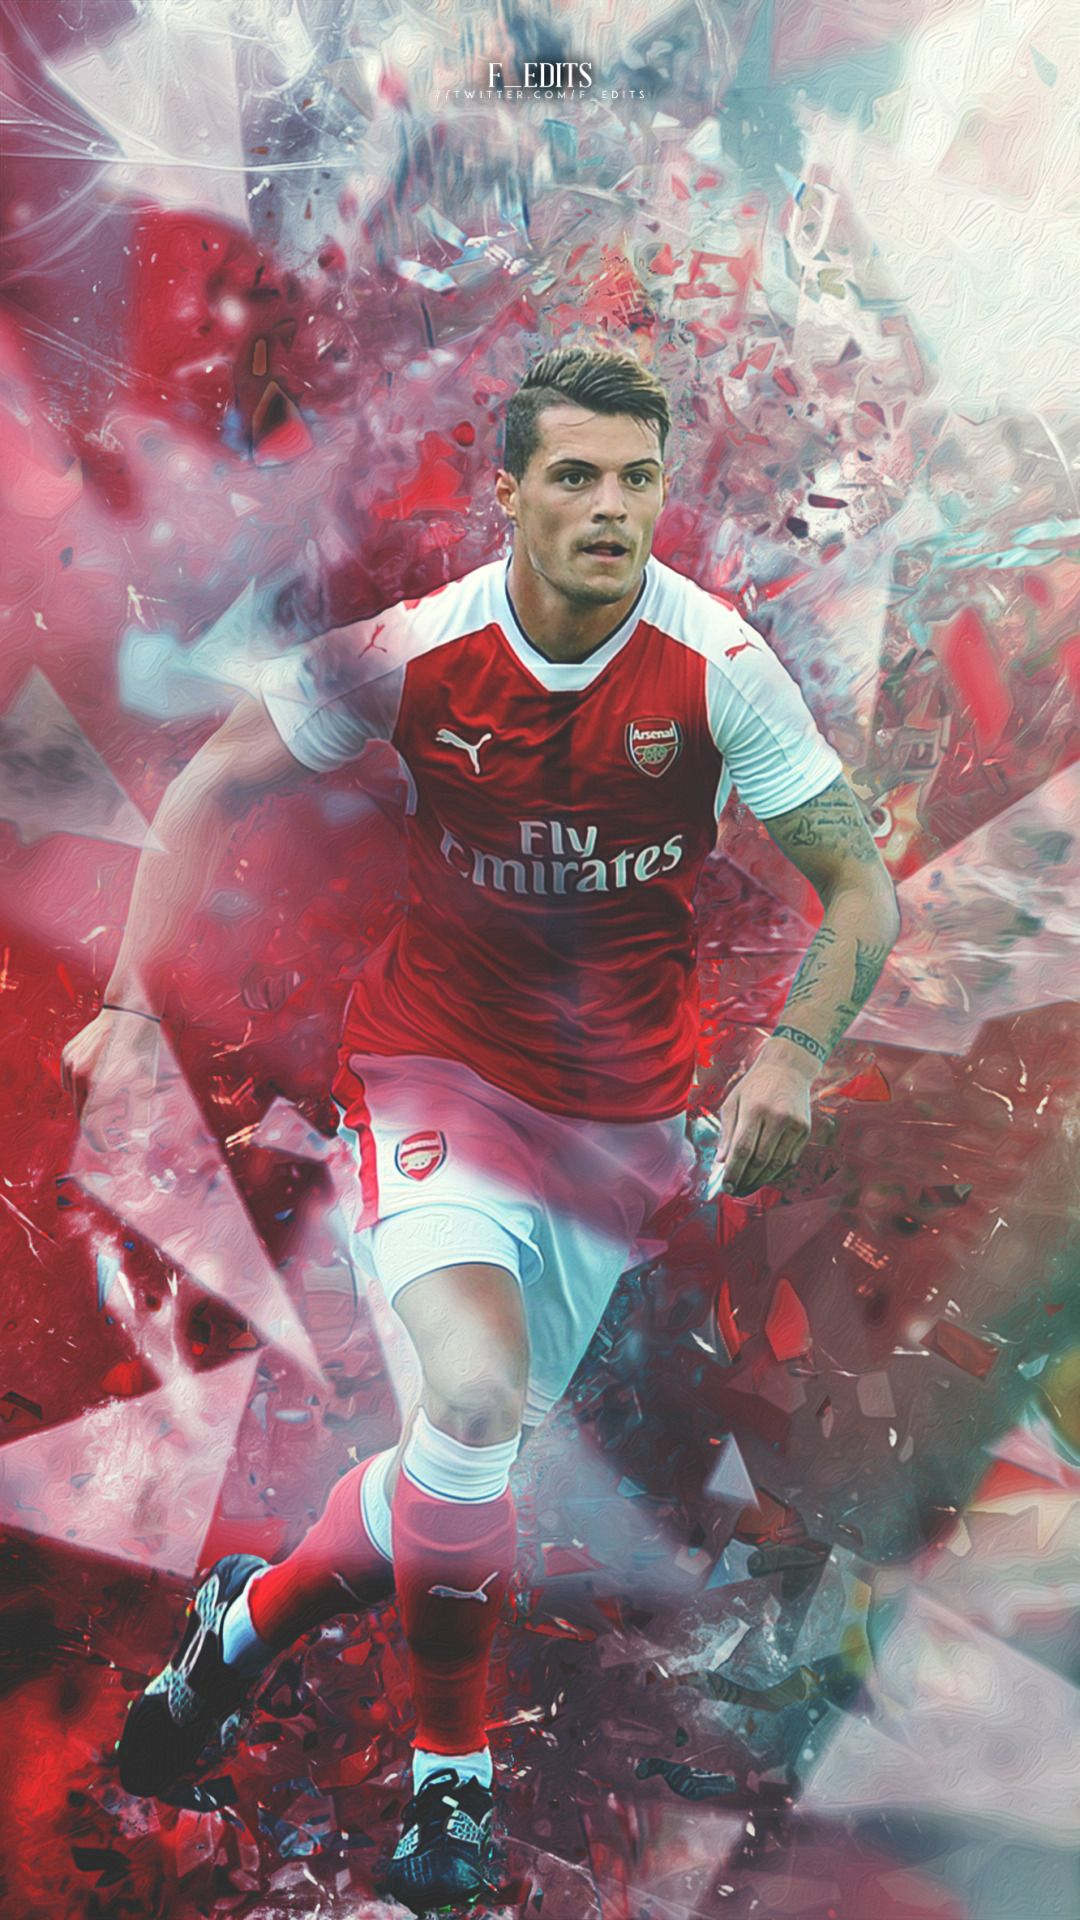 bb098f51e Xhaka. Very excited about this signing